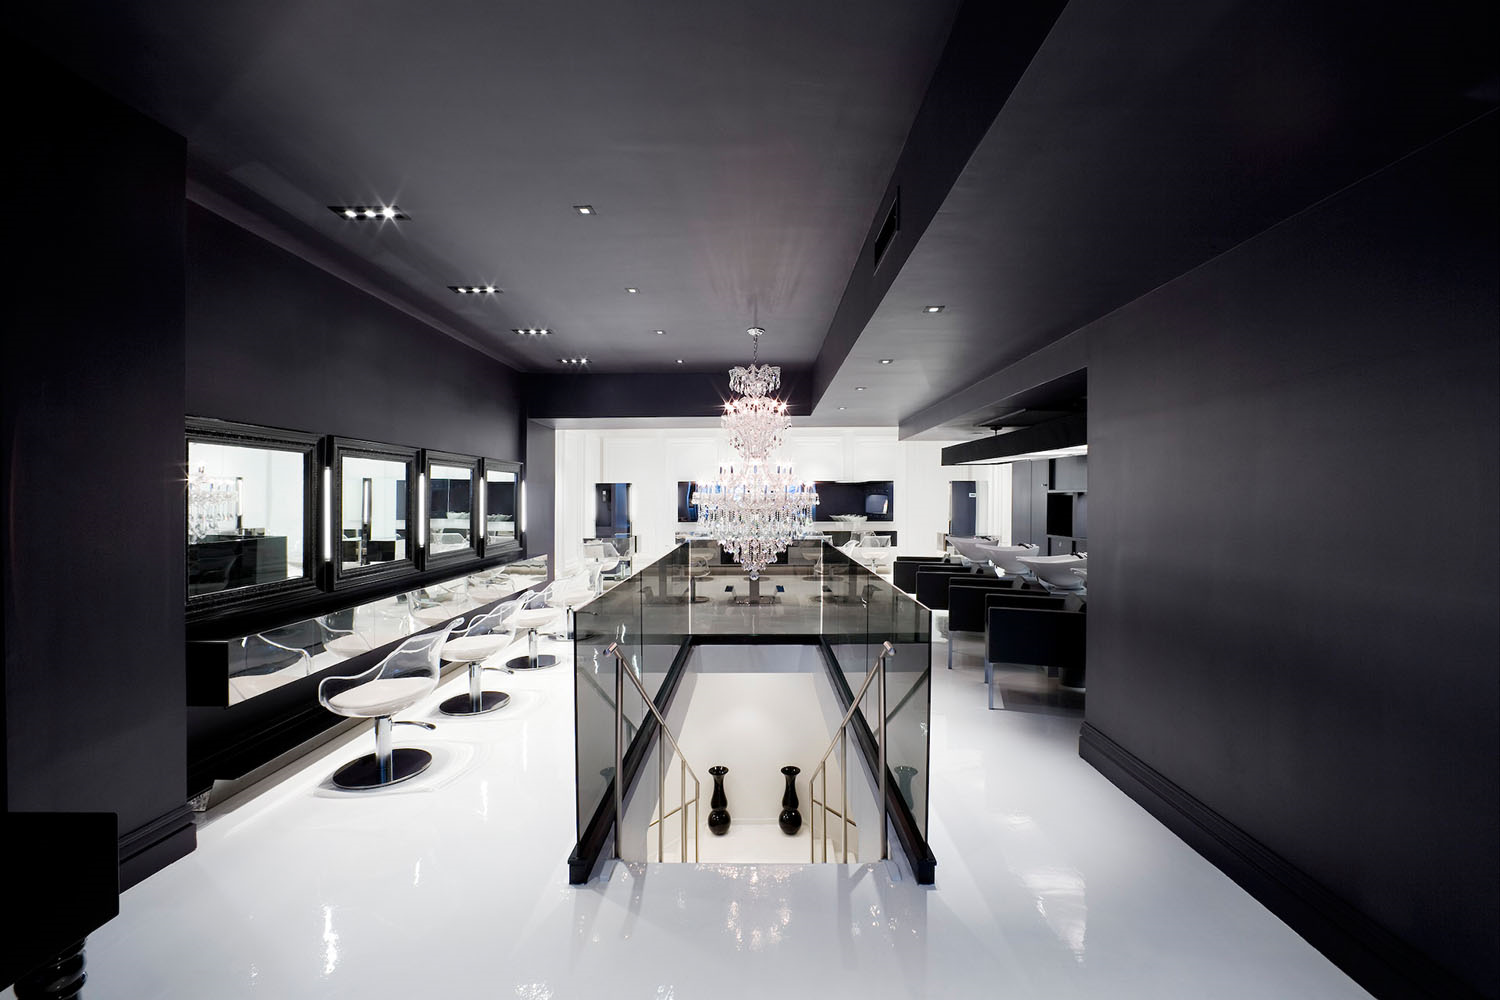 beautiful black and white hair salon with glass furniture and shiny floor and walls